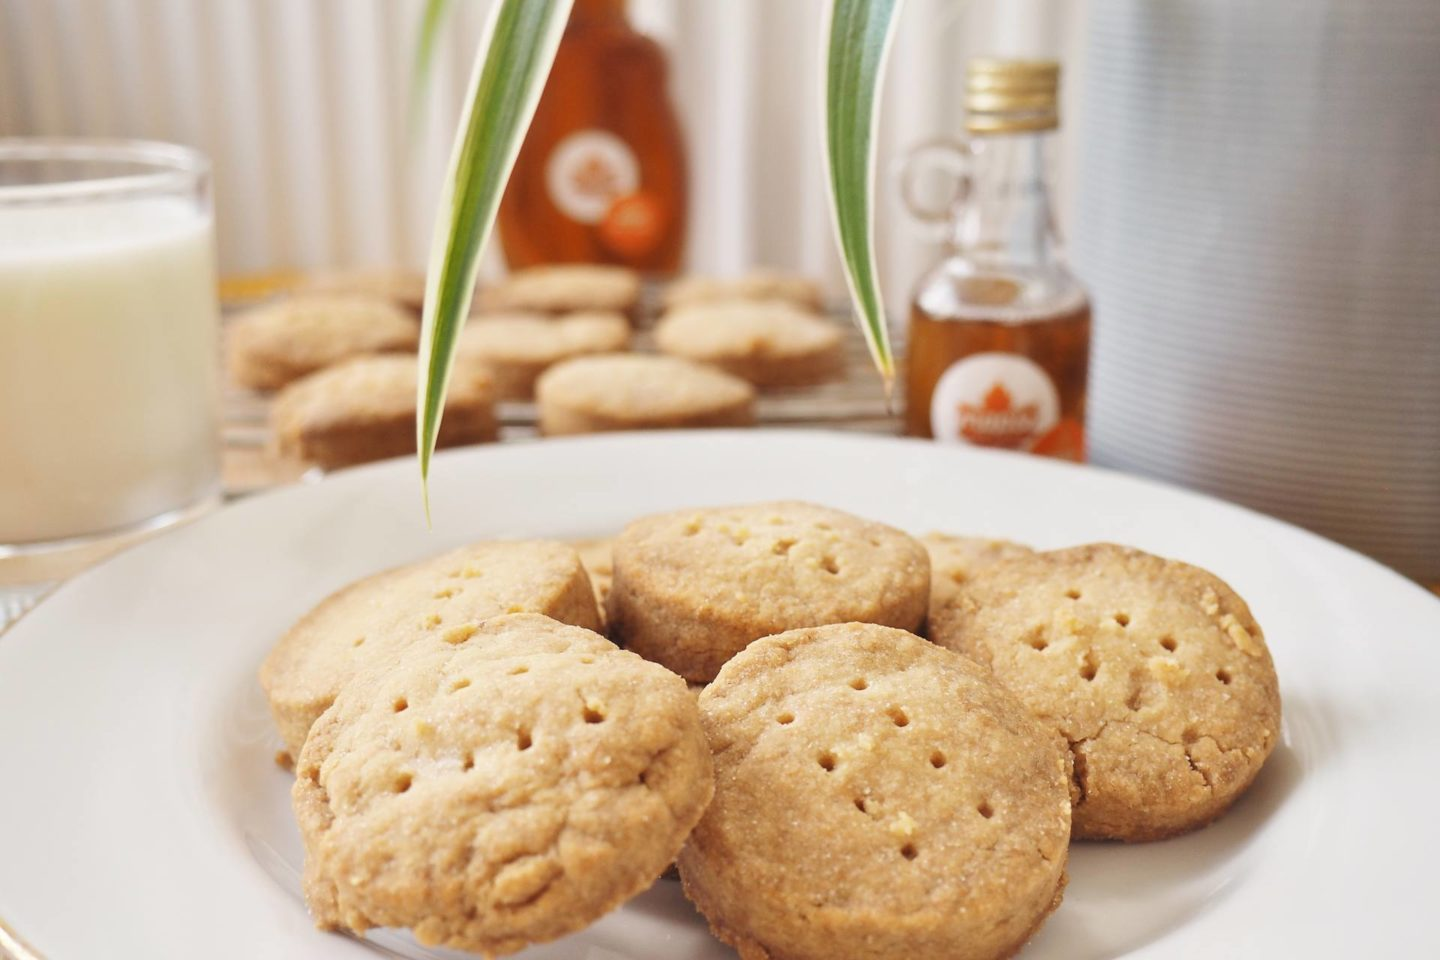 Maple Syrup From Canada Bottle and shortbread biscuits